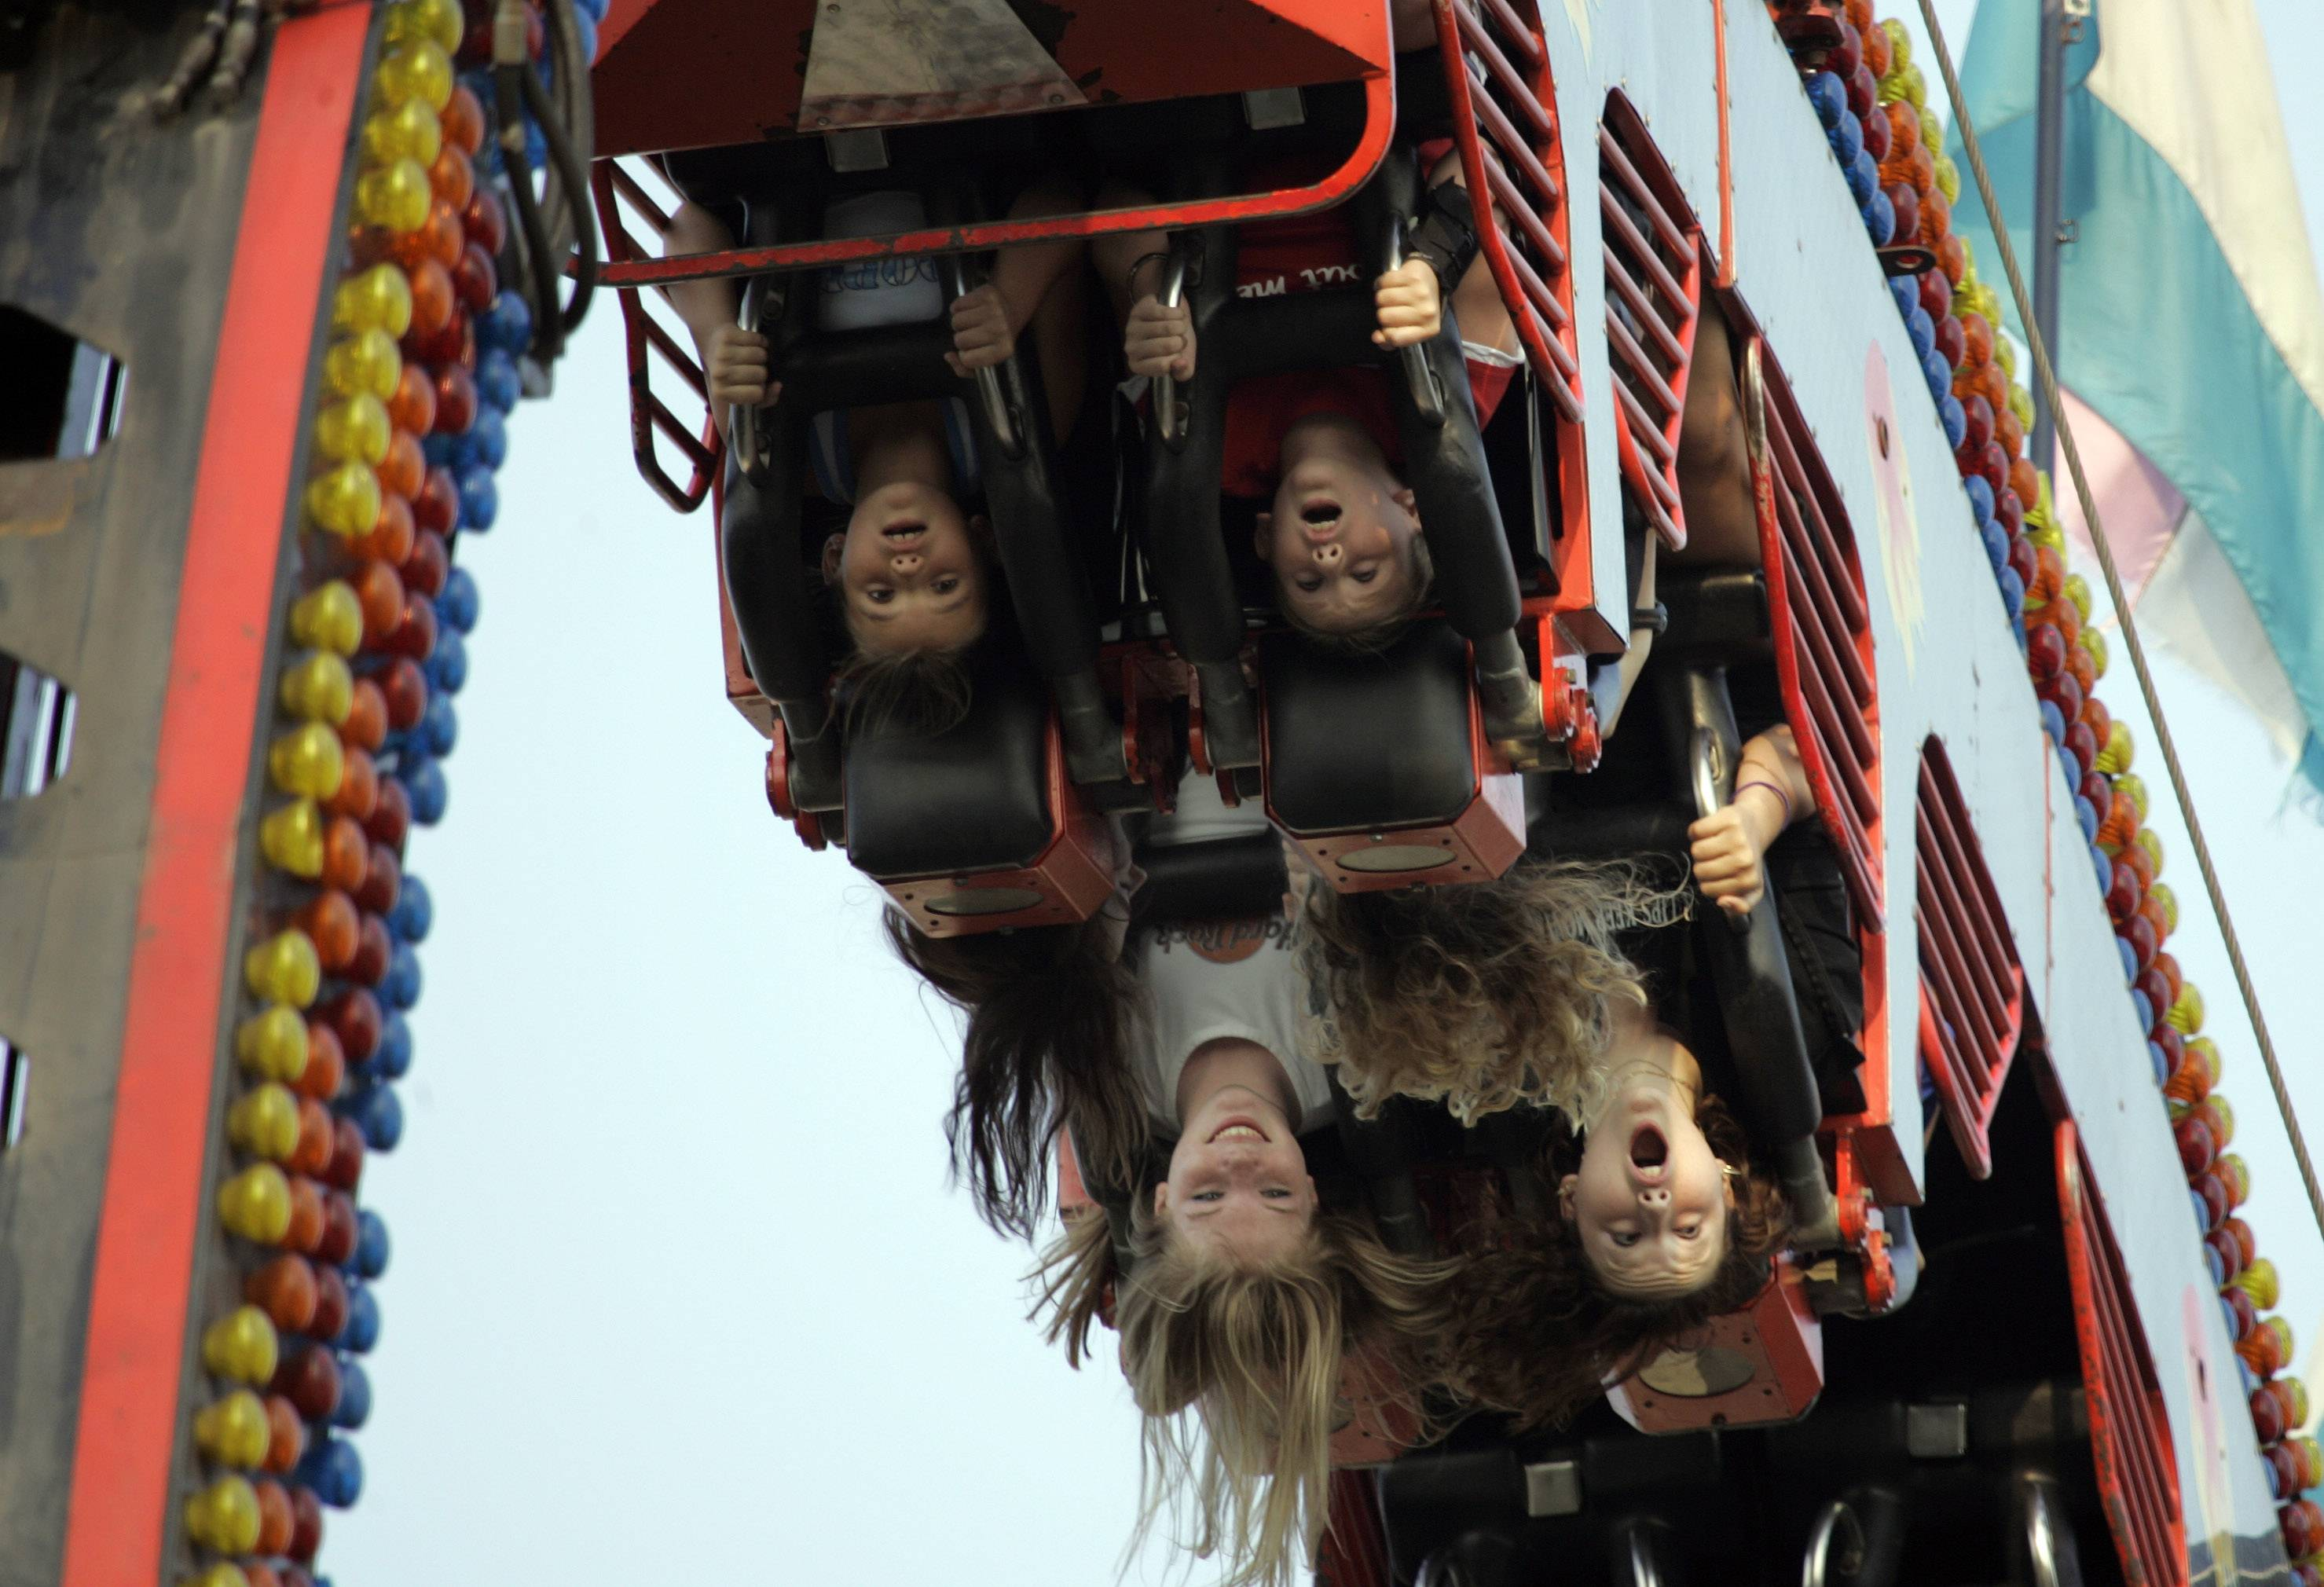 Check out the carnival along Jackson Avenue as part of the Last Fling Labor Day festival in Naperville.